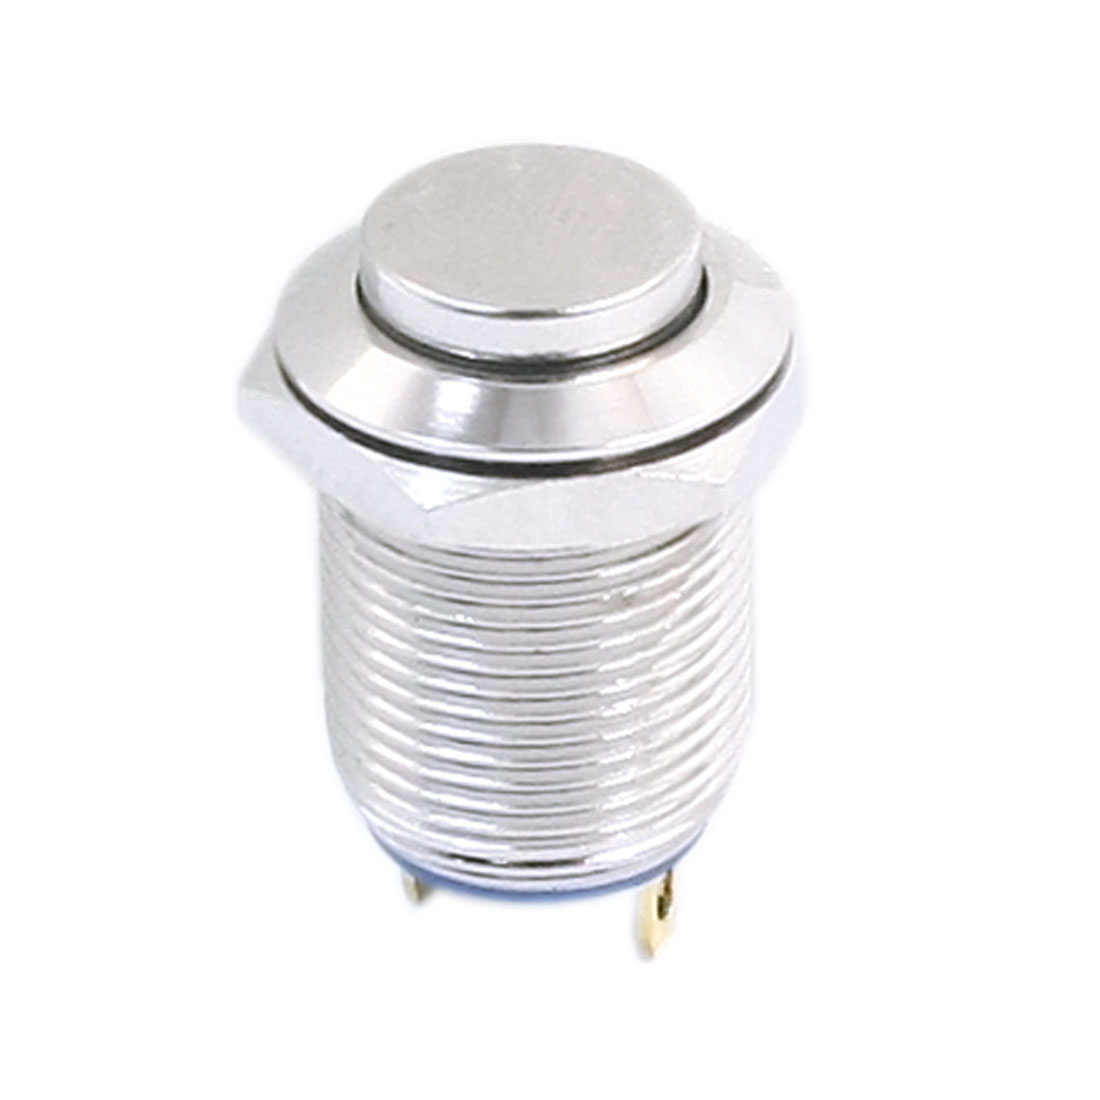 AC 250V 2A SPST 4Pins High Flat Head 12mm Thread Panel Mount Momentary Metal Push Button Switch